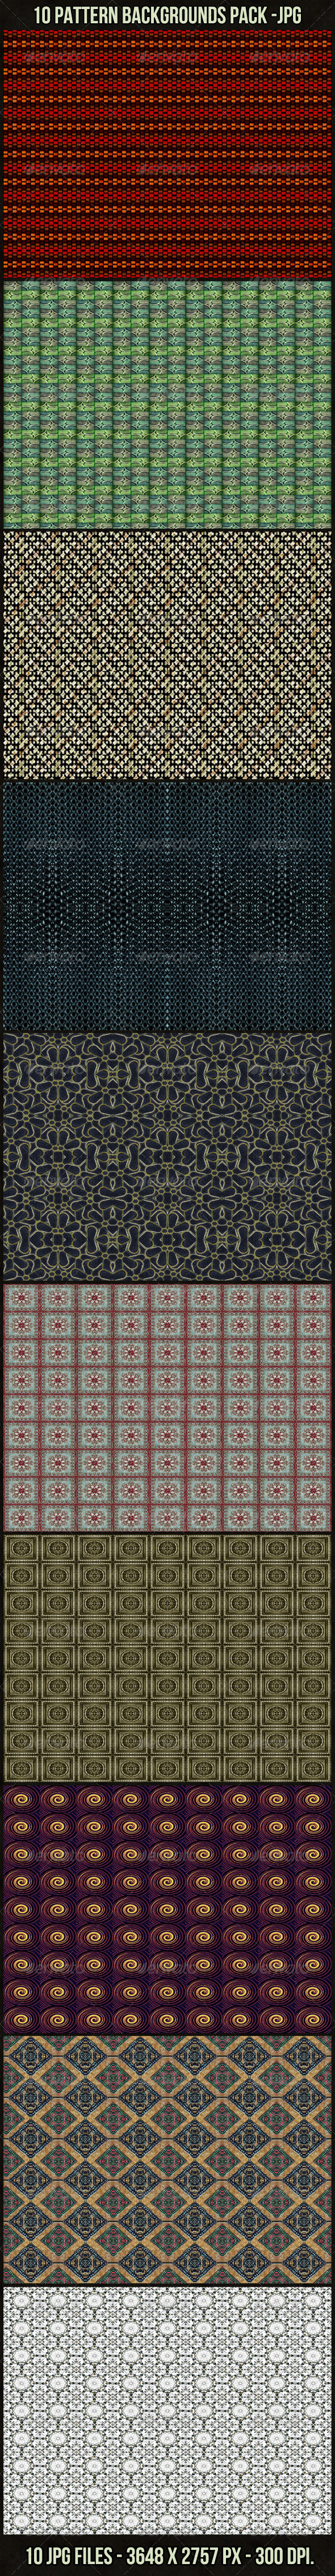 10 Pattern Backgrounds Pack - Patterns Backgrounds